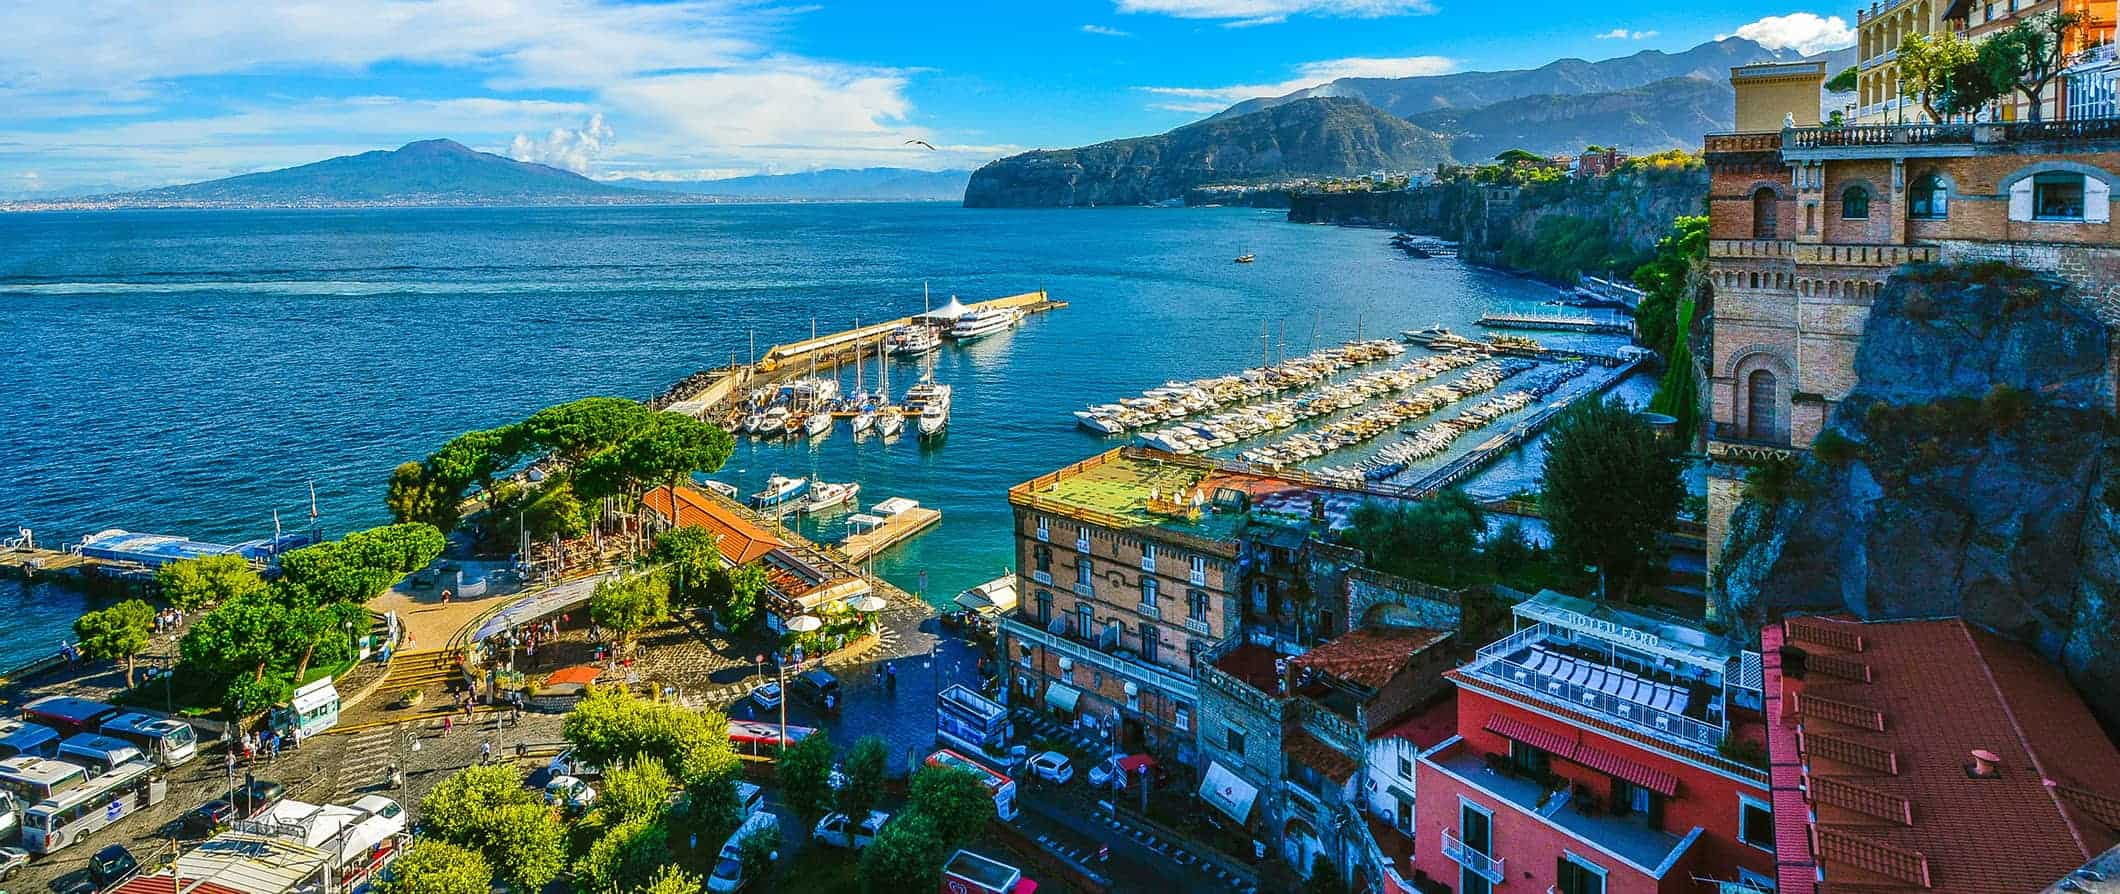 sea views in Sorrento, Italy